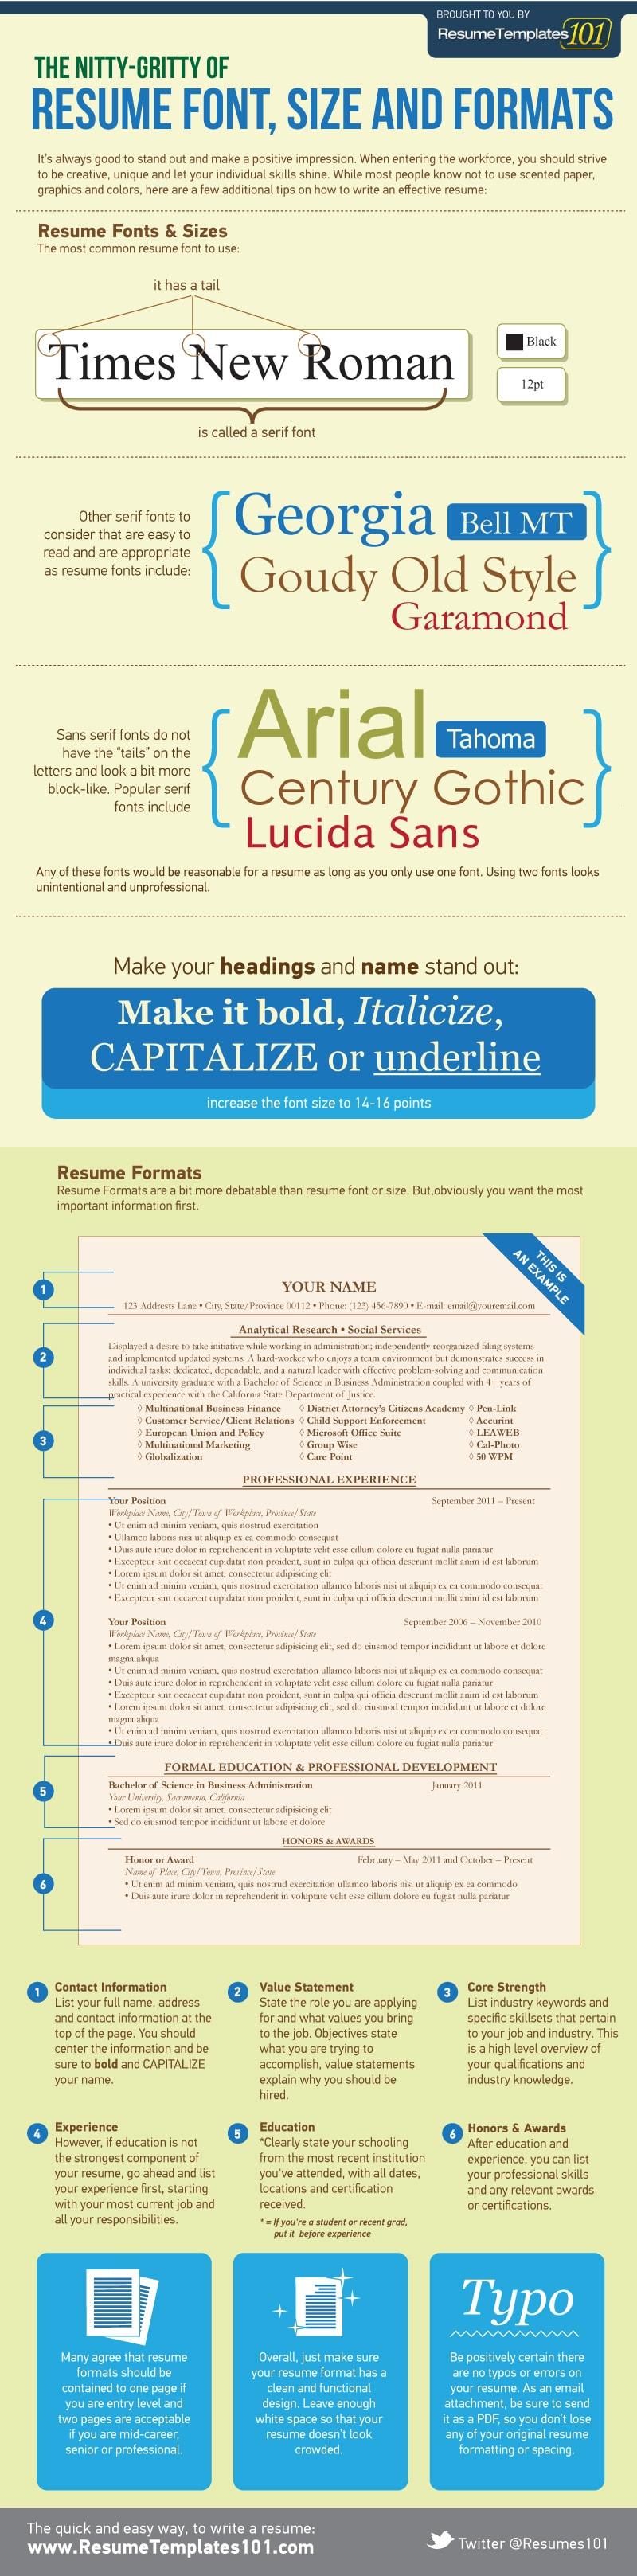 Best Font For A Resume What Is The Best Resume Font Size And Format Infographic